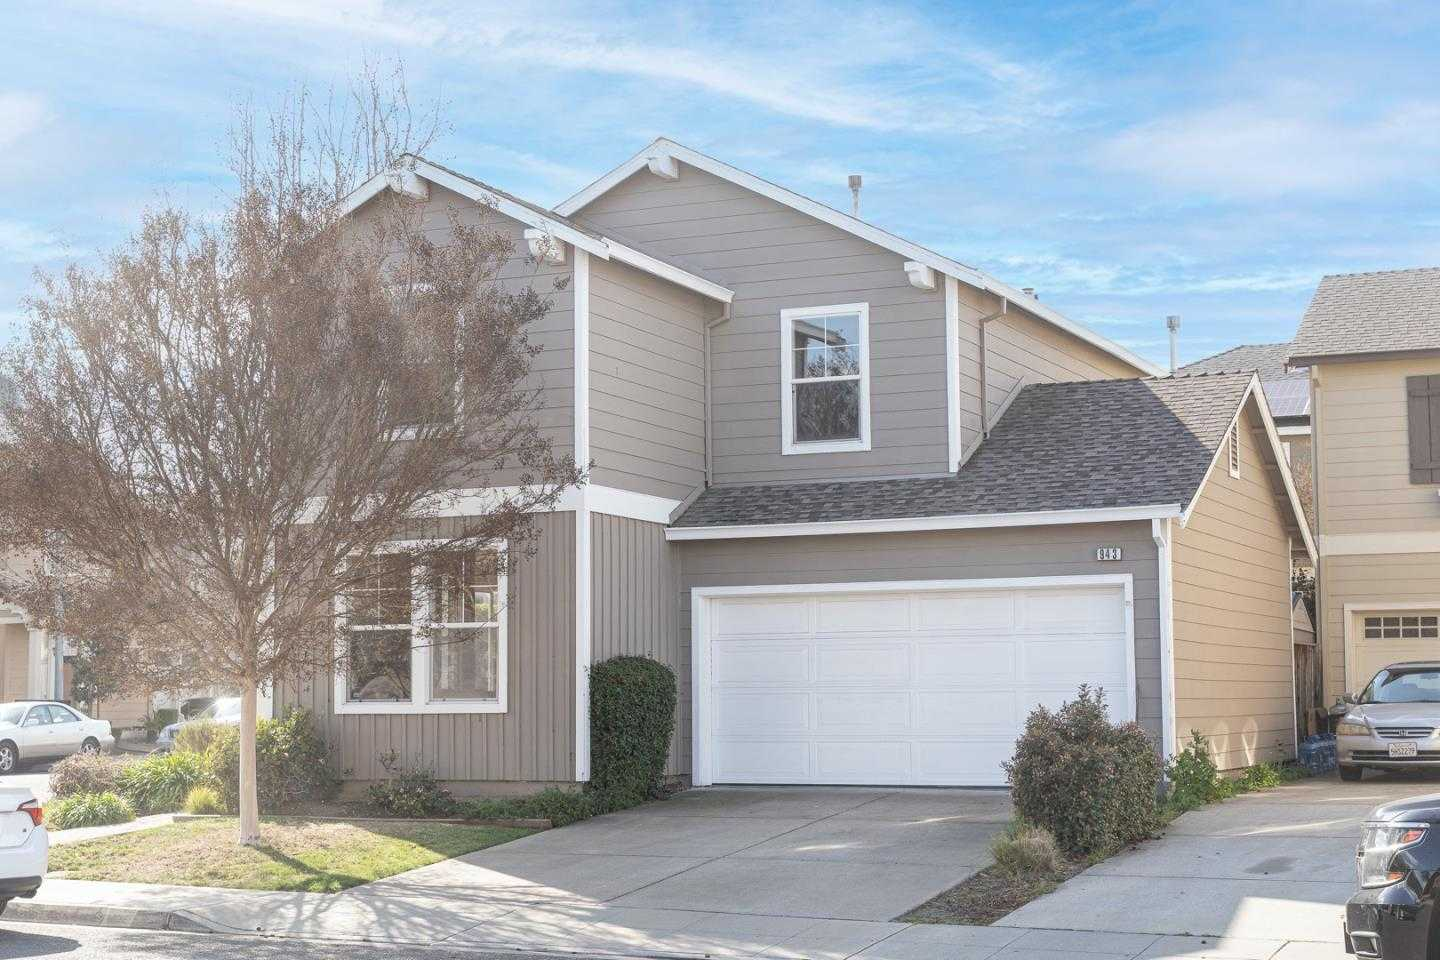 $1,428,950 - 4Br/3Ba -  for Sale in East Palo Alto